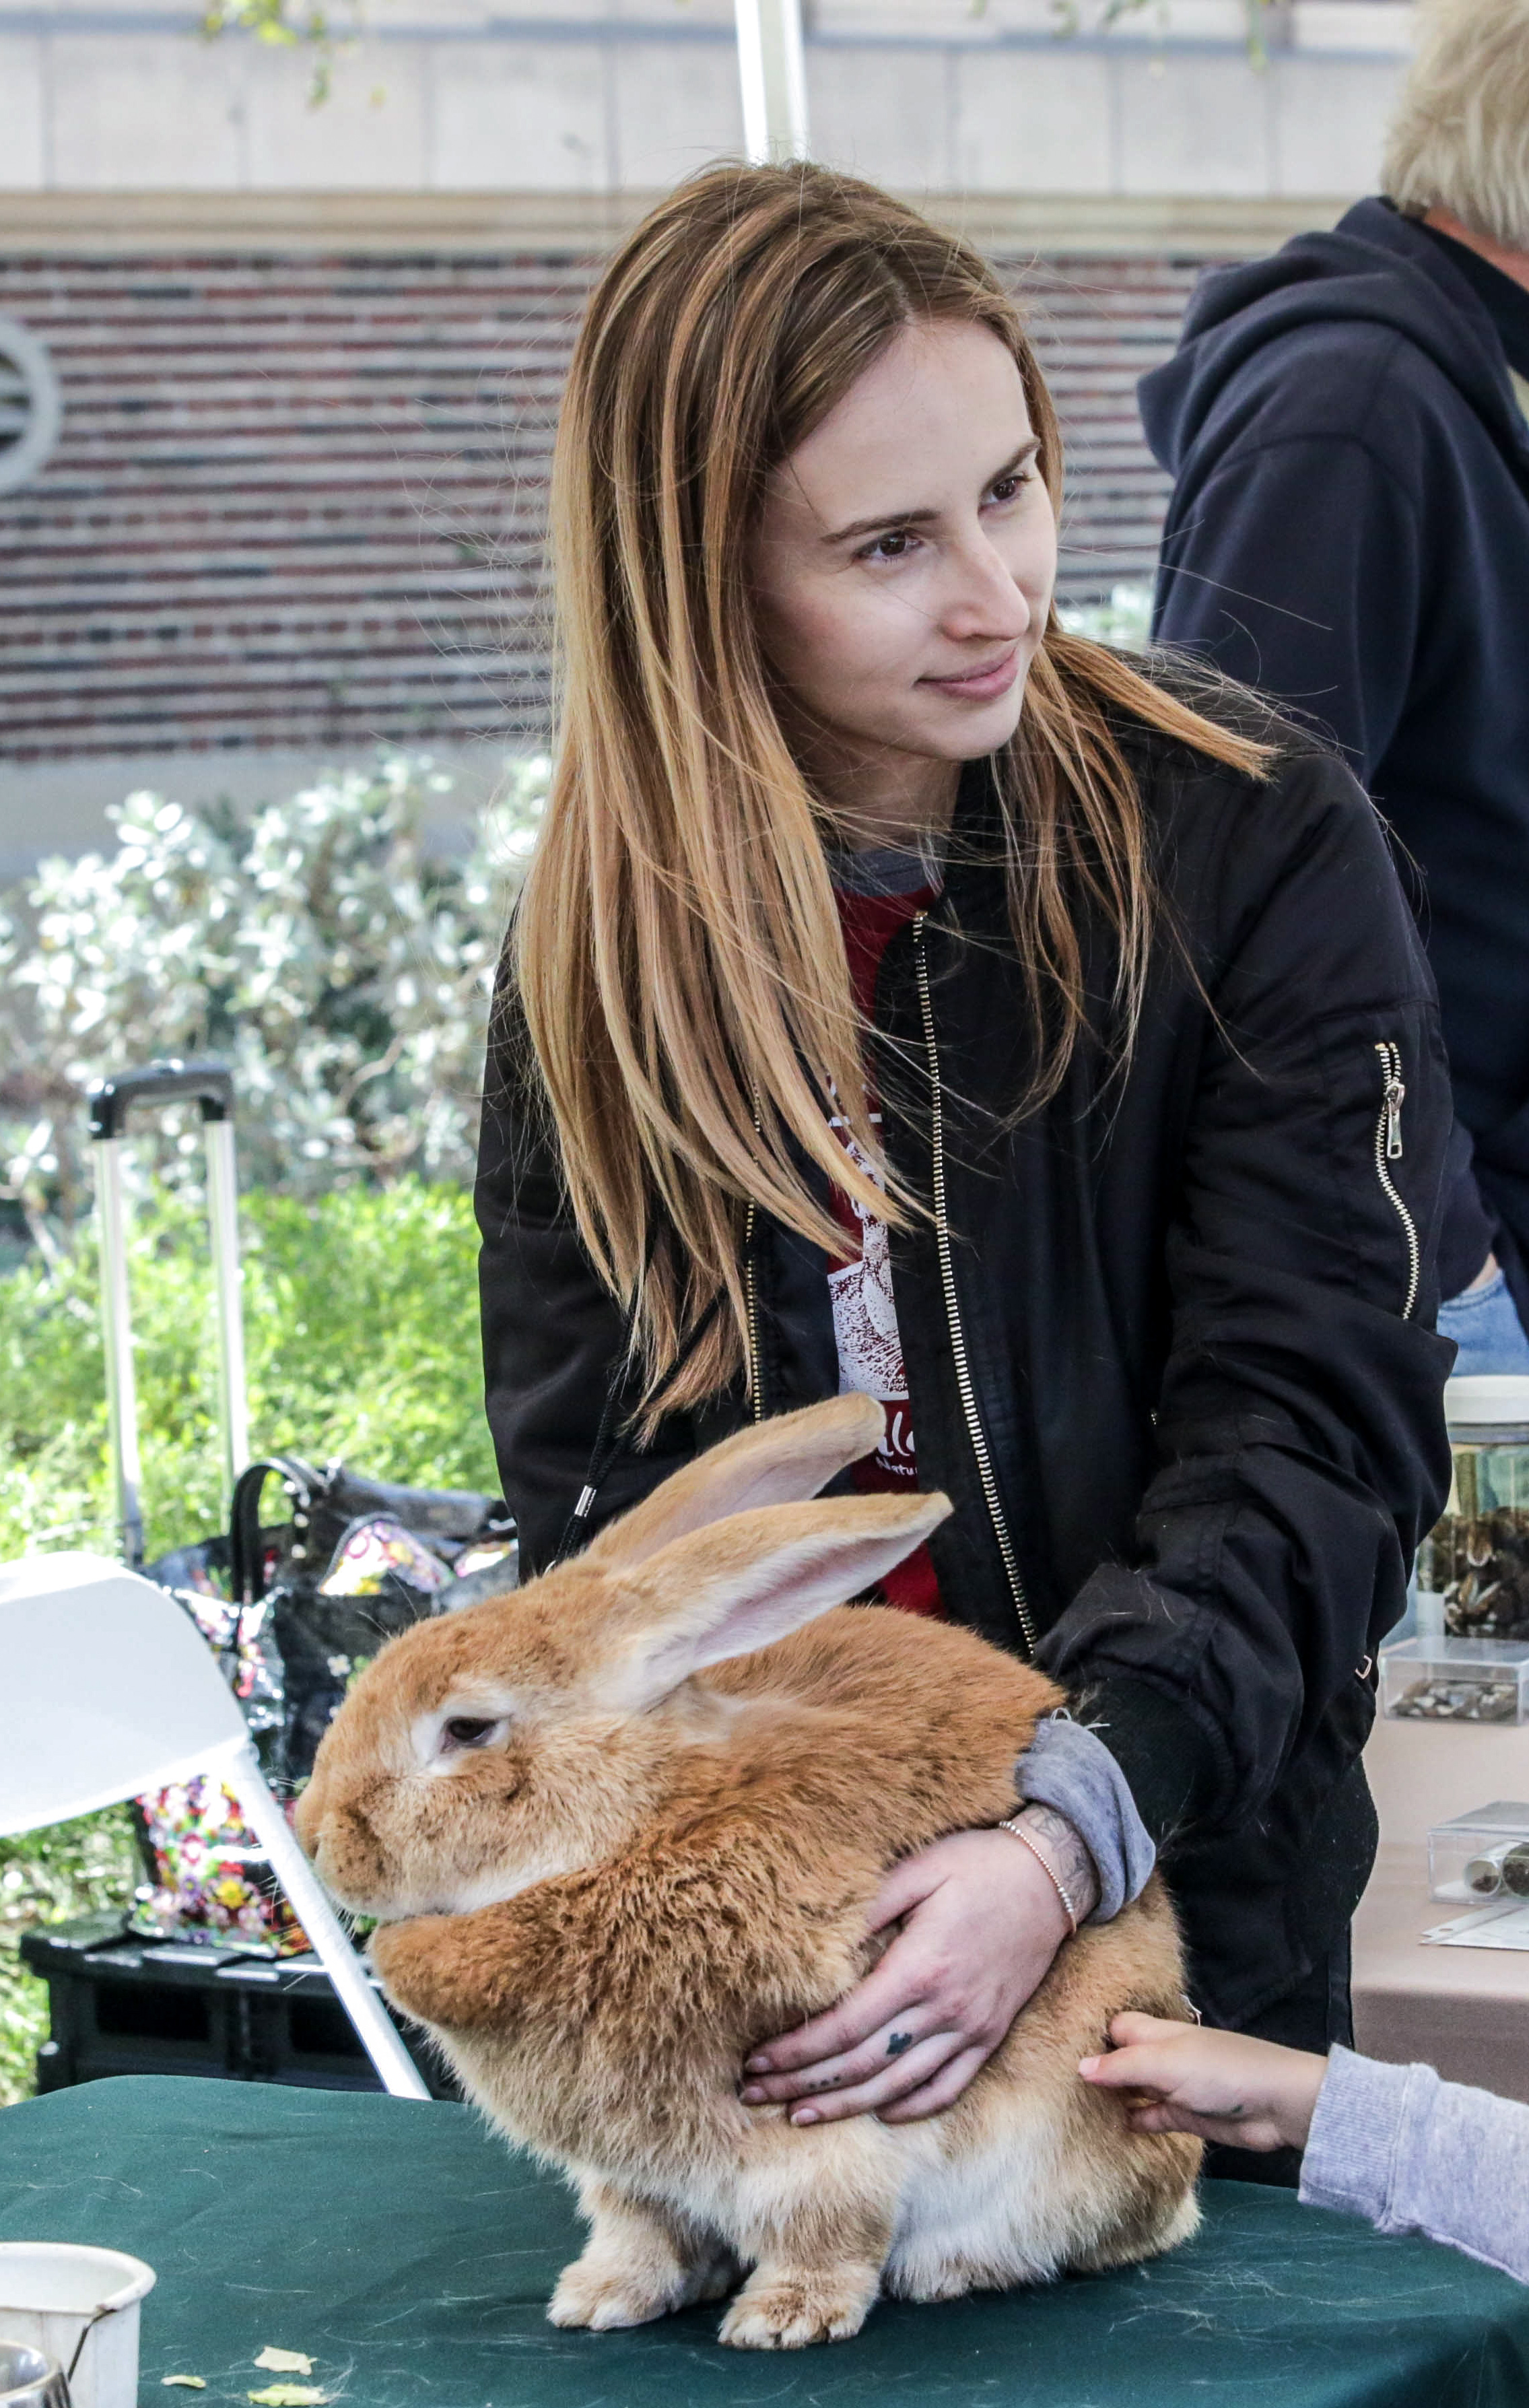 Alexis Kahn keeps hold of a Flemish Rabbit as lots of little hands reached out to pet the soft fur. The rabbit and other animals were on display at the Los Angeles Nature Fest at the Natural History Museum on the University of Southern California campus, Los Angeles, California. Events took place on Satureday, March 17, 2018. (Corsair Photo/WilliamWendelman)